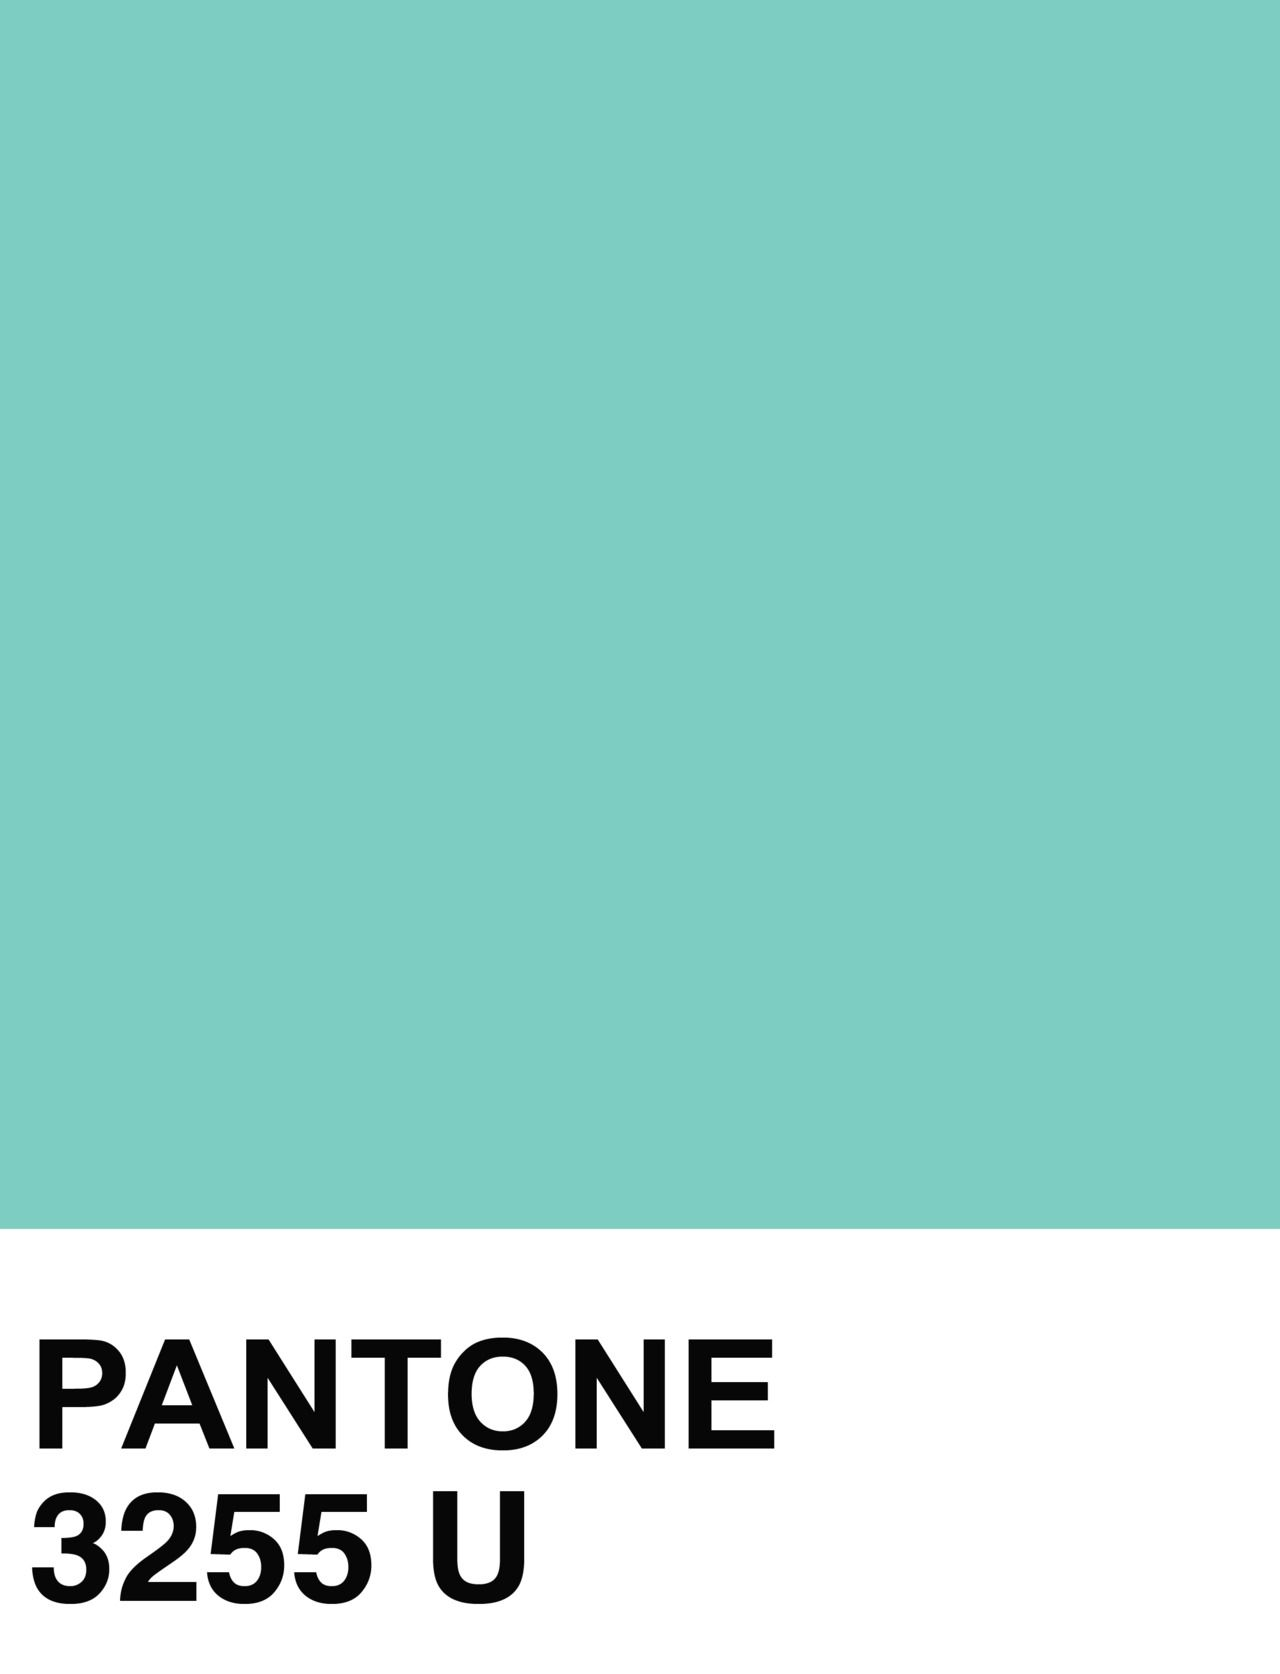 Tiffany blue pantone nini bedroom pinterest pantone pantone solid uncoated color swatches for week love this color inspiration geenschuldenfo Choice Image